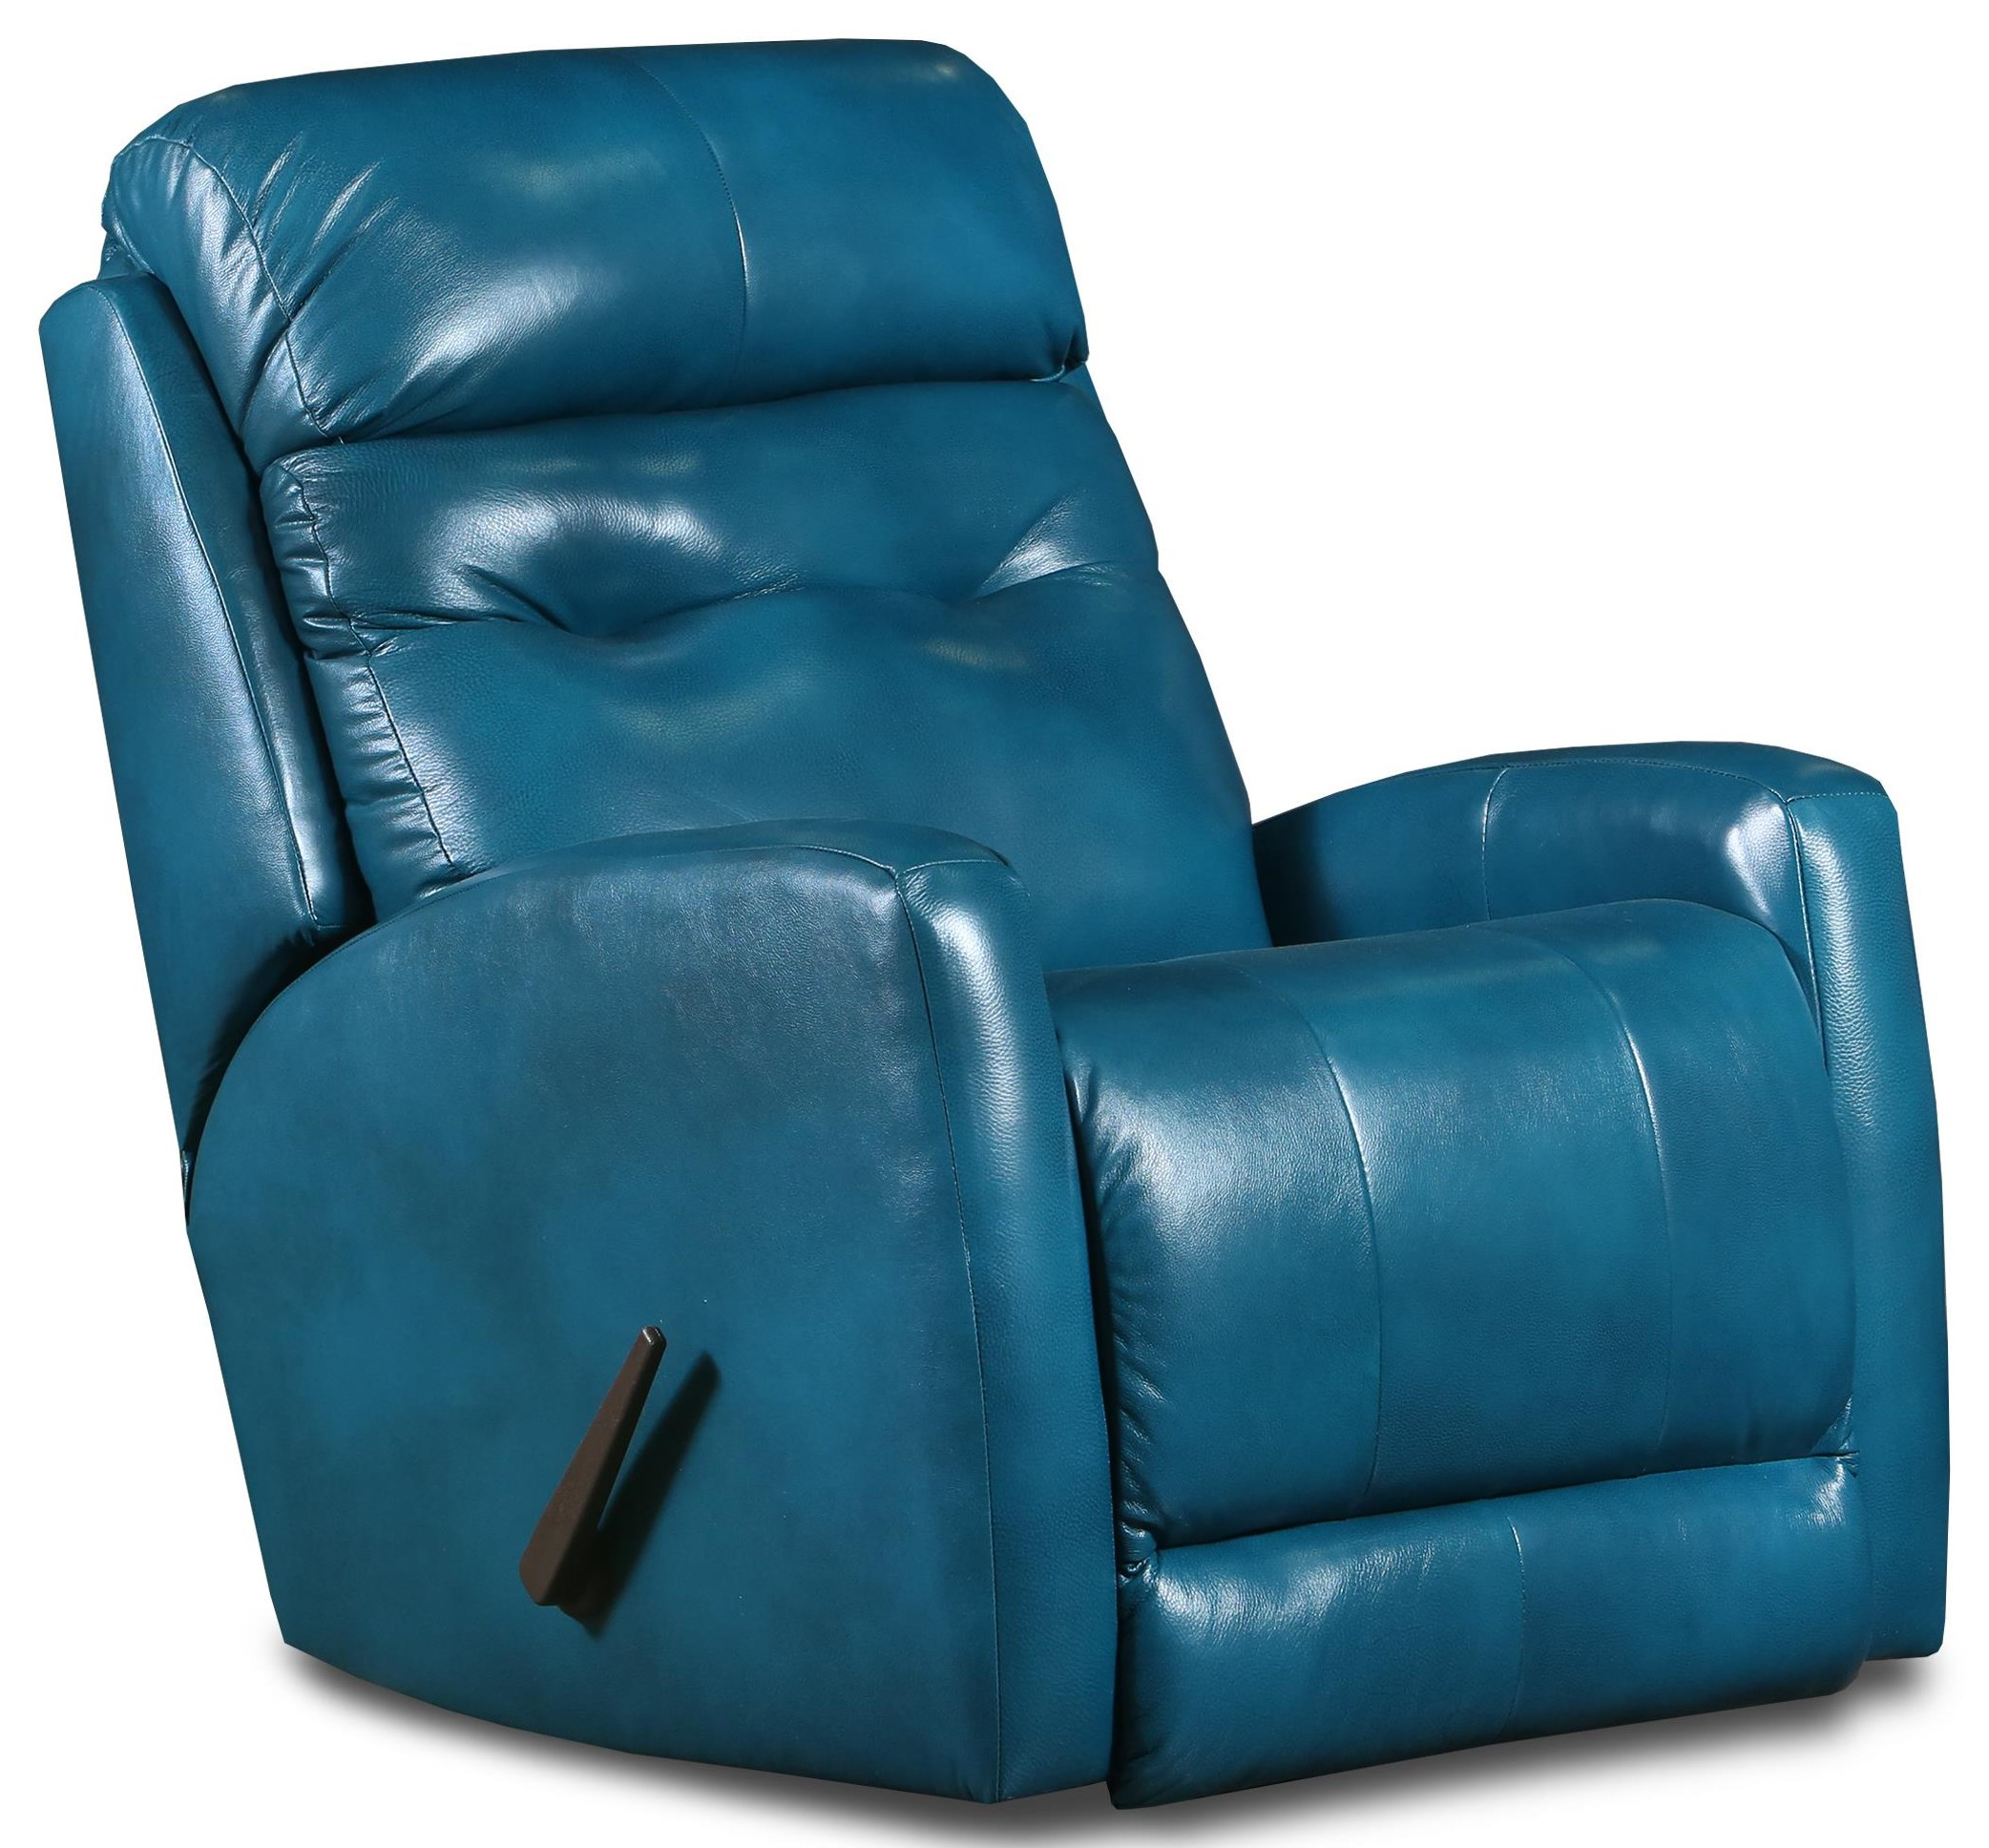 1157 Rocker Recliner 1157 LEATHER Rocker Recliner 906-31 by Southern Motion at Furniture Fair - North Carolina